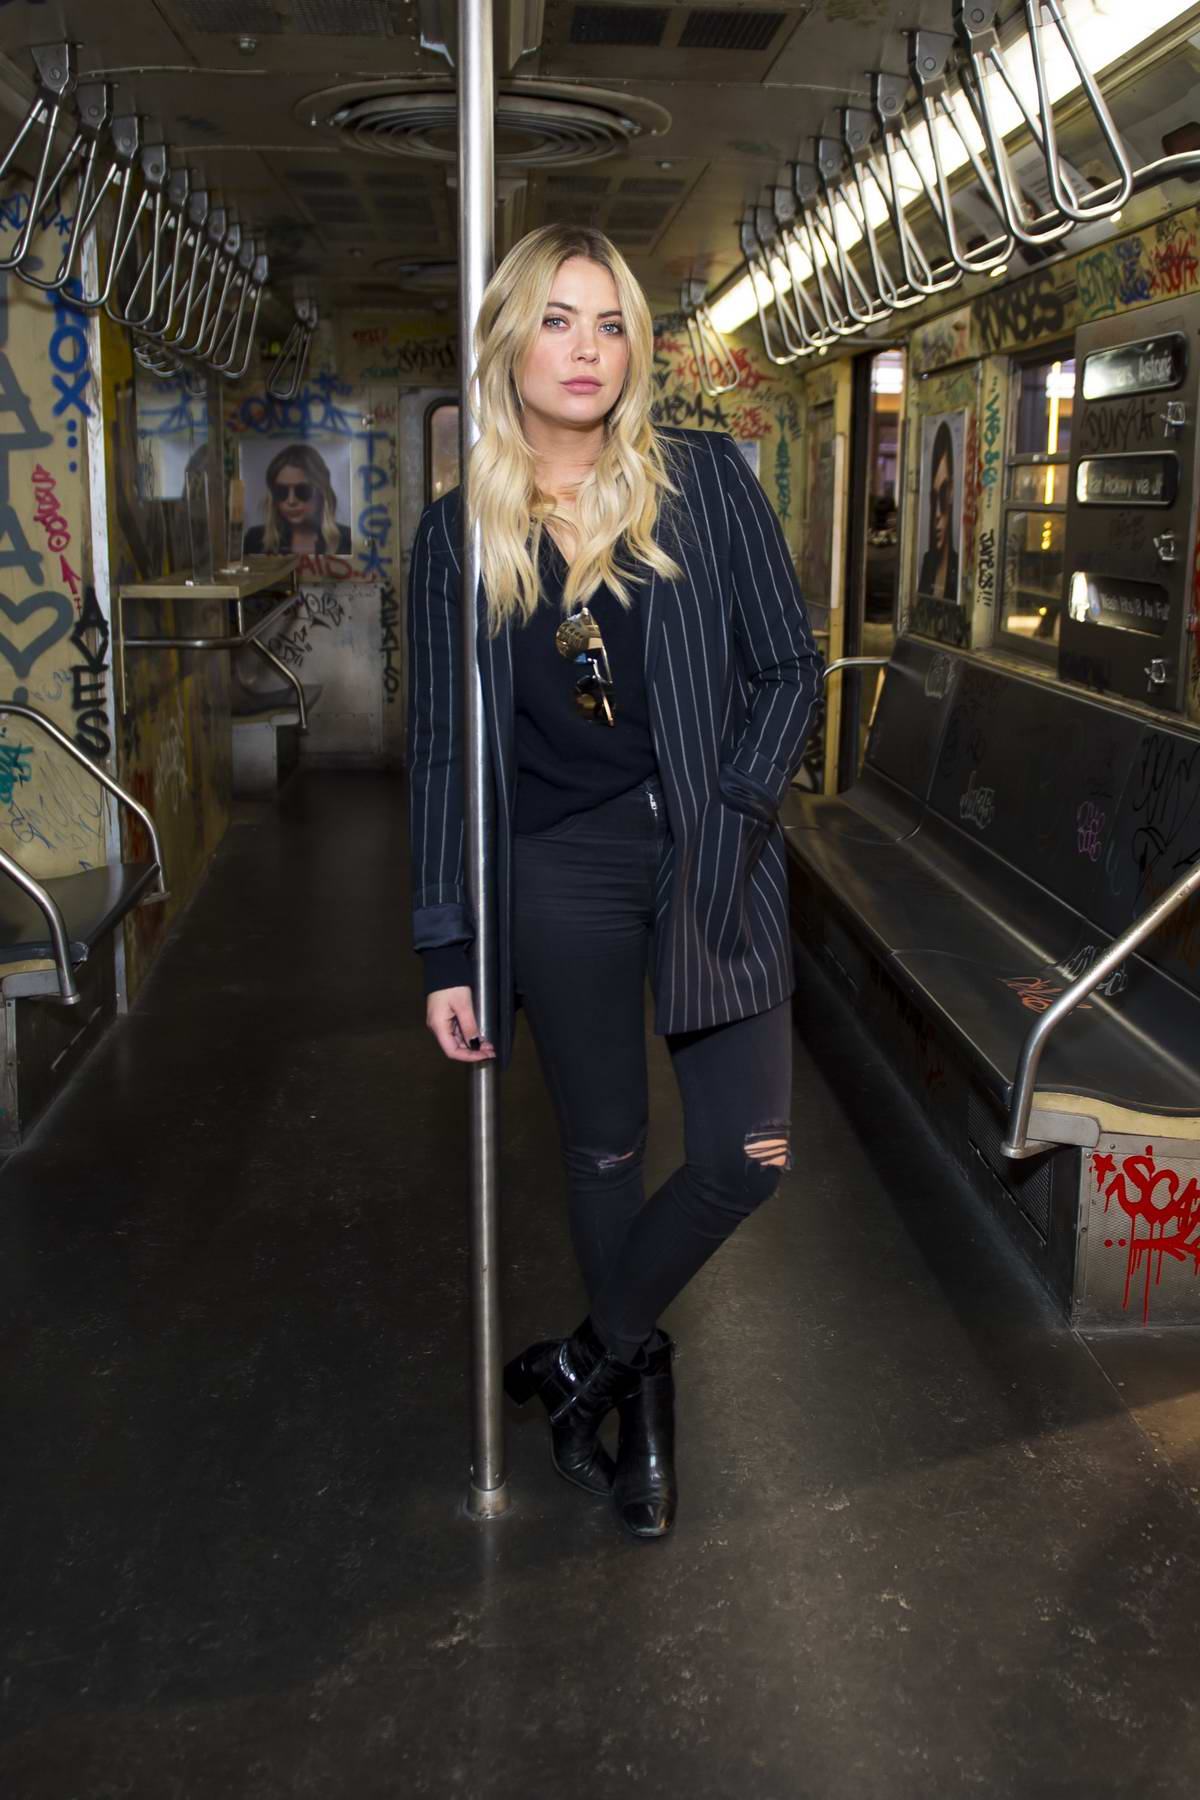 Ashley Benson at Prive Revaux fan meet & greet in New York City